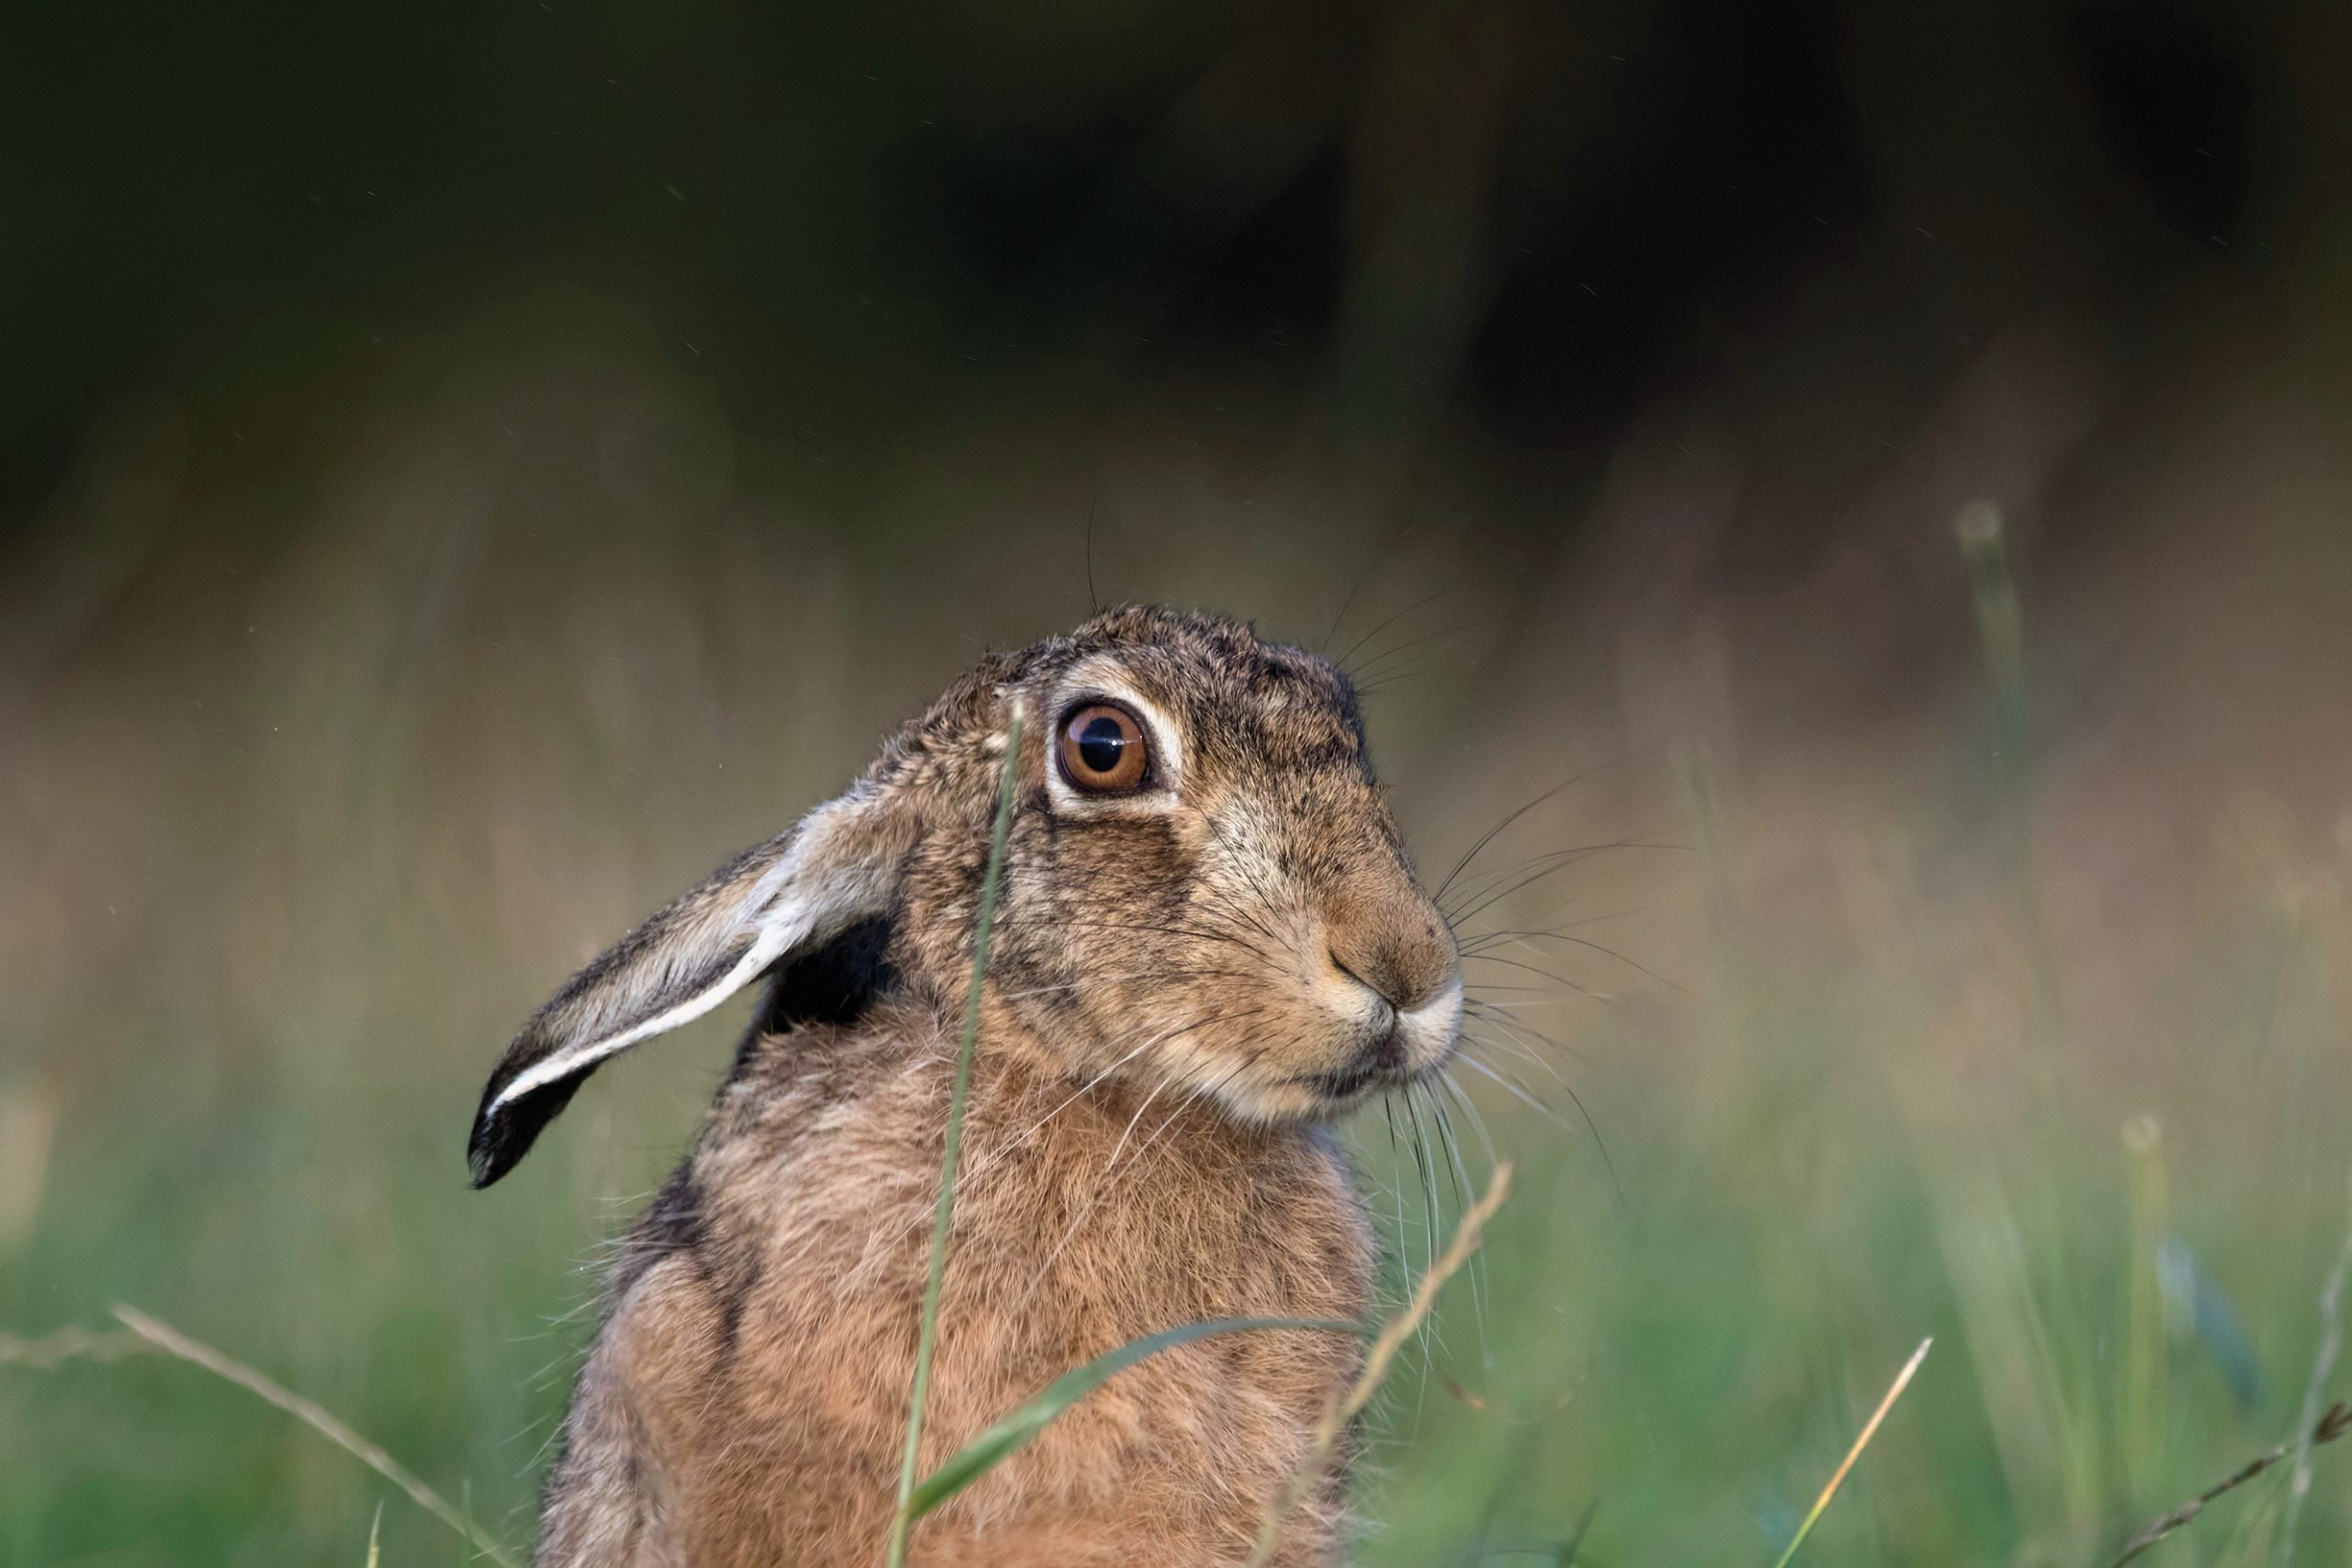 It is an ecological evil that hares are slaughtered by landowners seeking to protect their profits